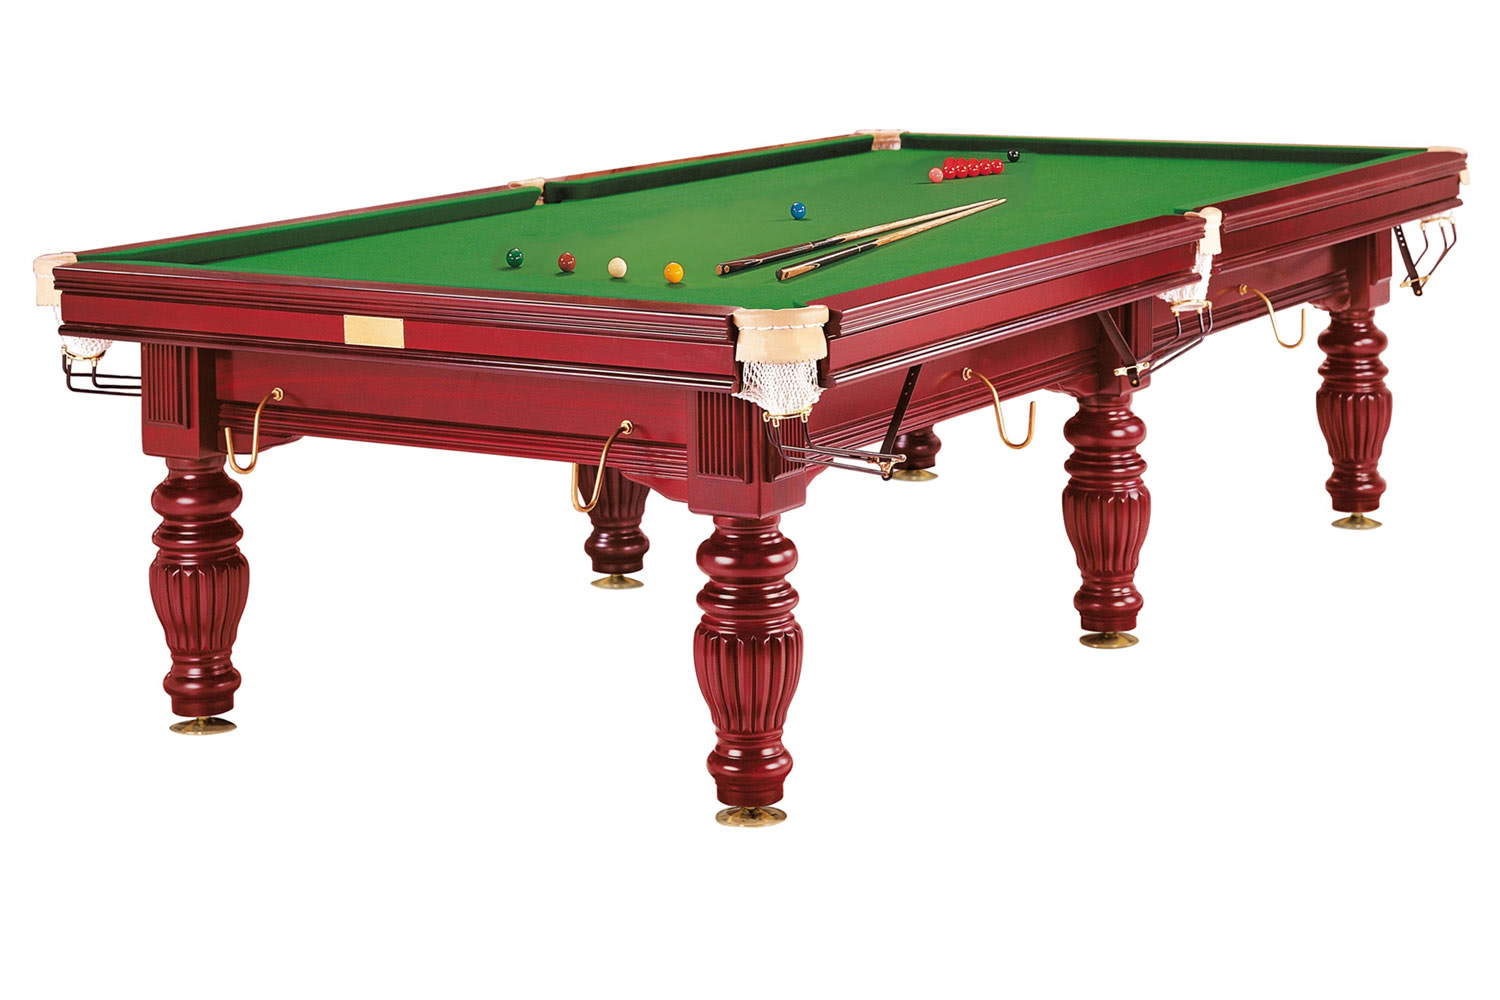 Dynamic Prince Snooker Table Liberty Games